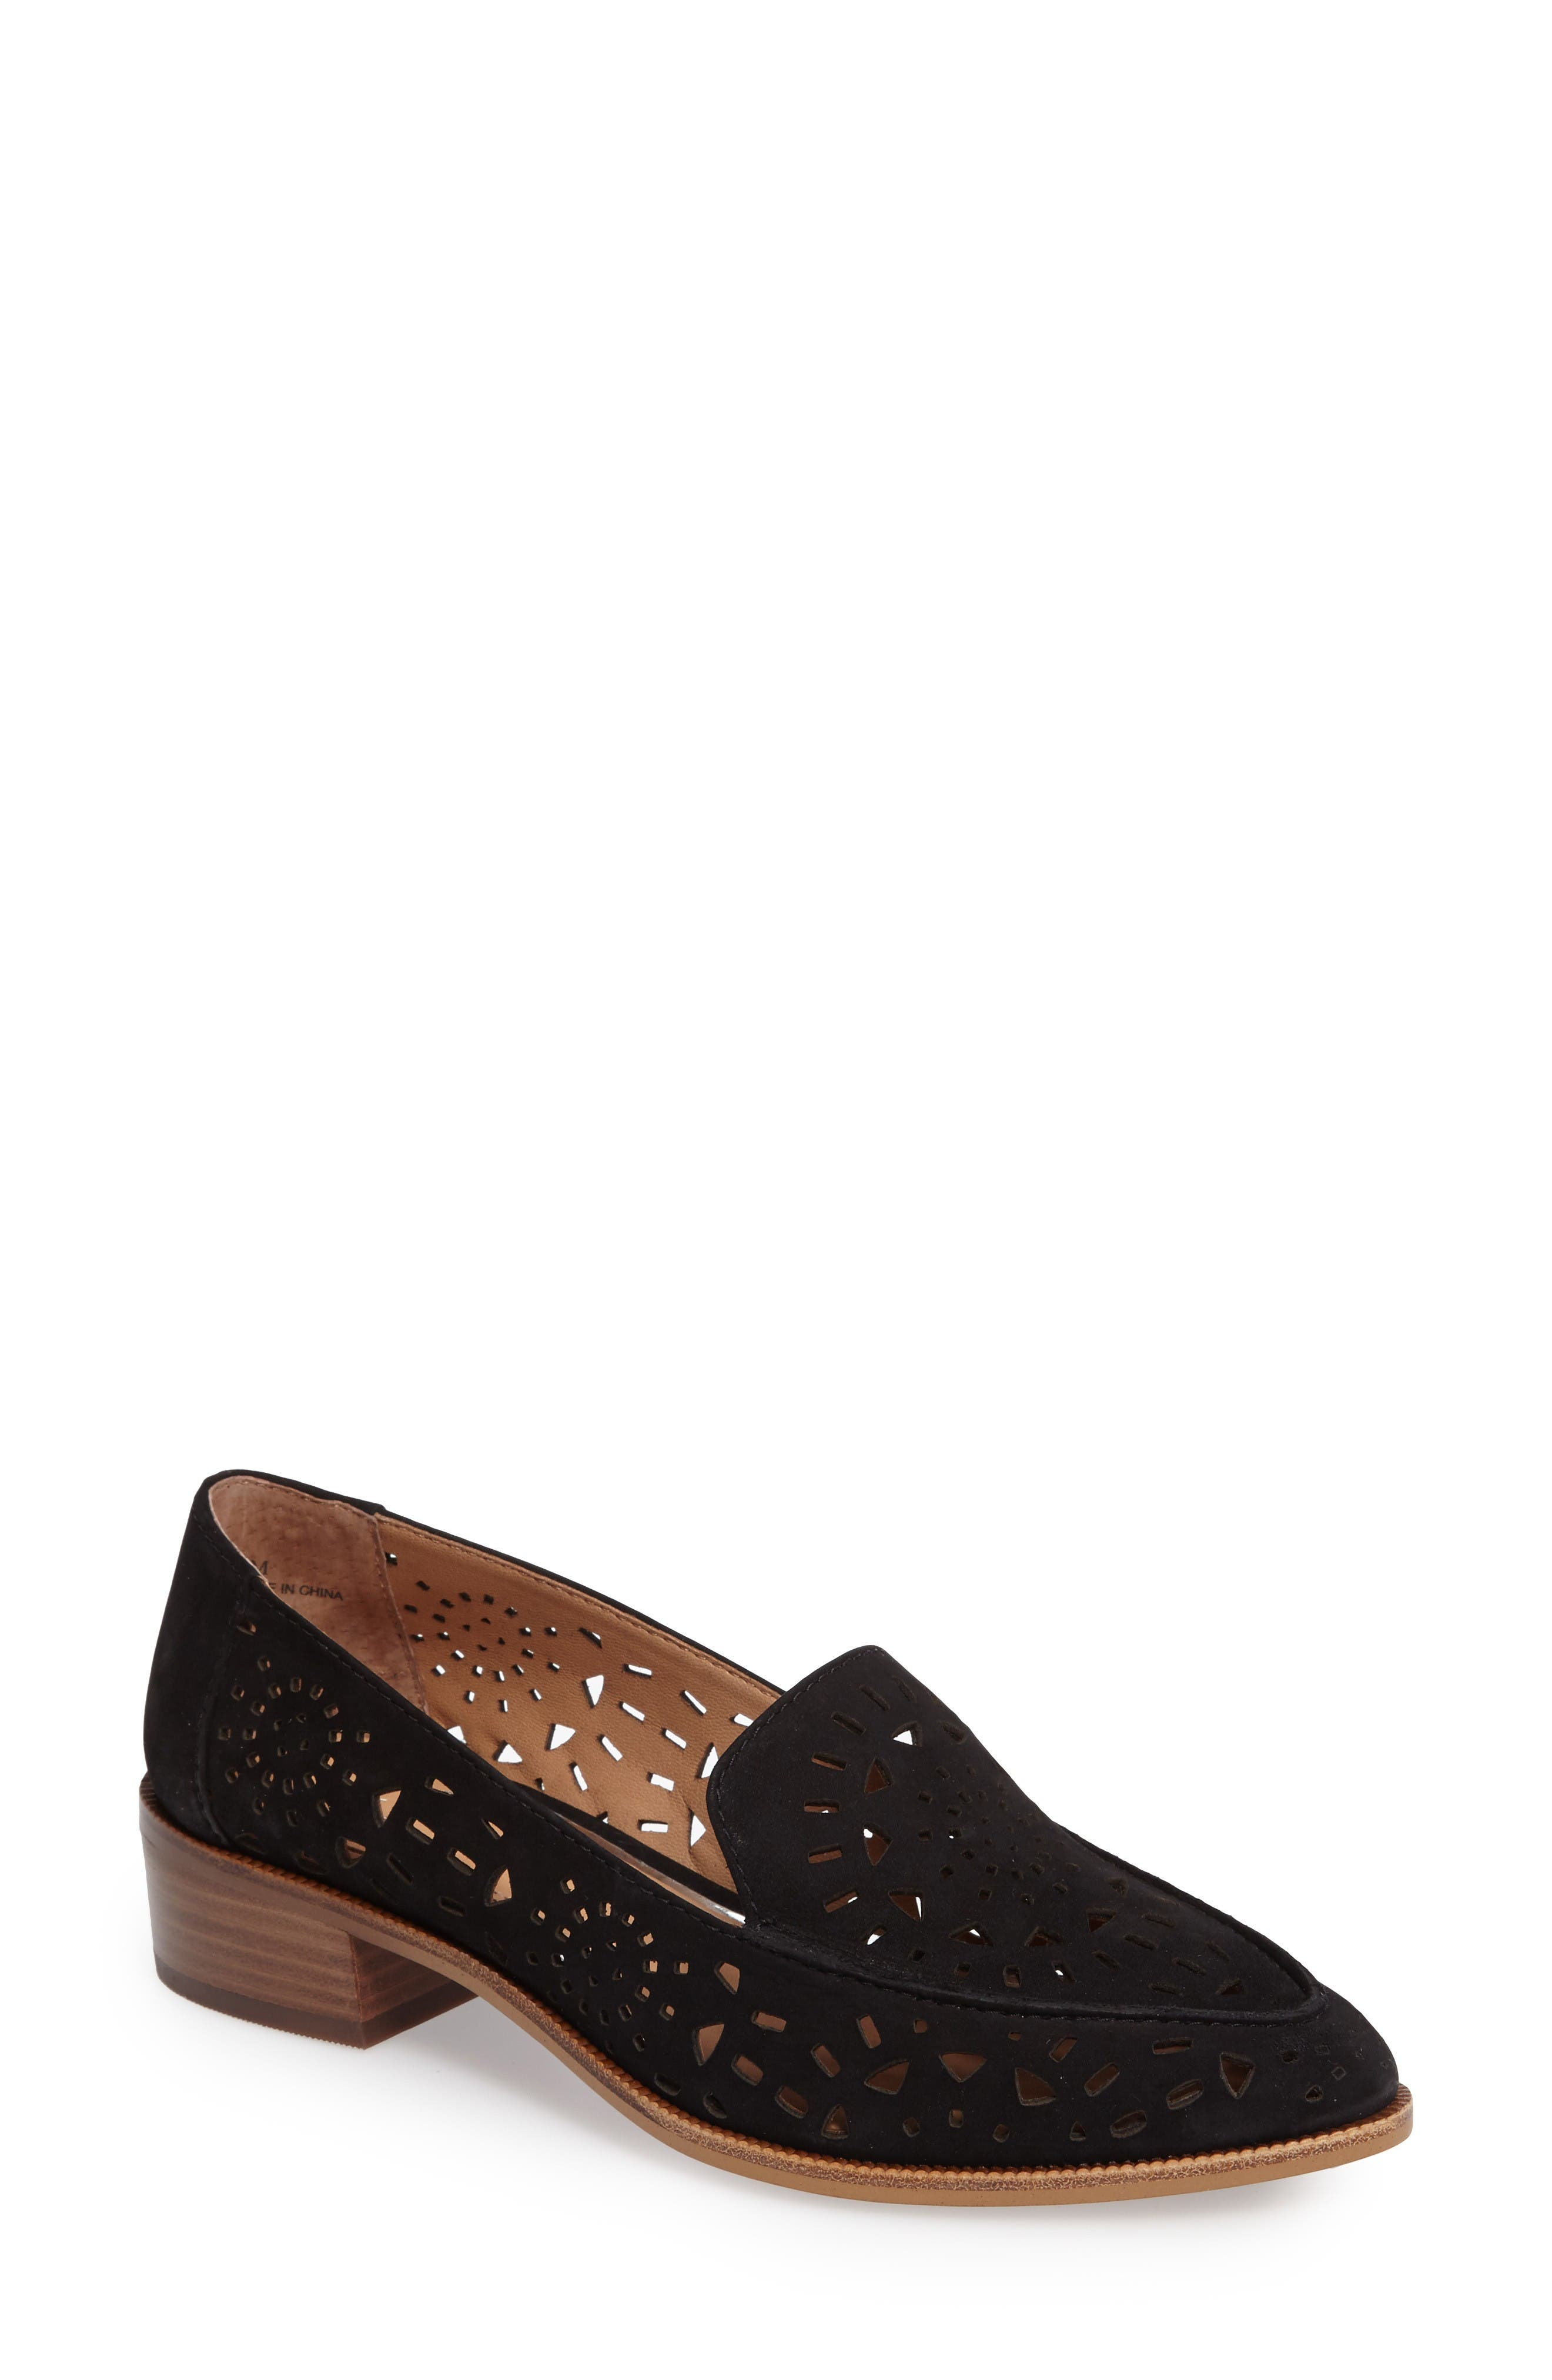 LINEA PAOLO Babe Perforated Loafer